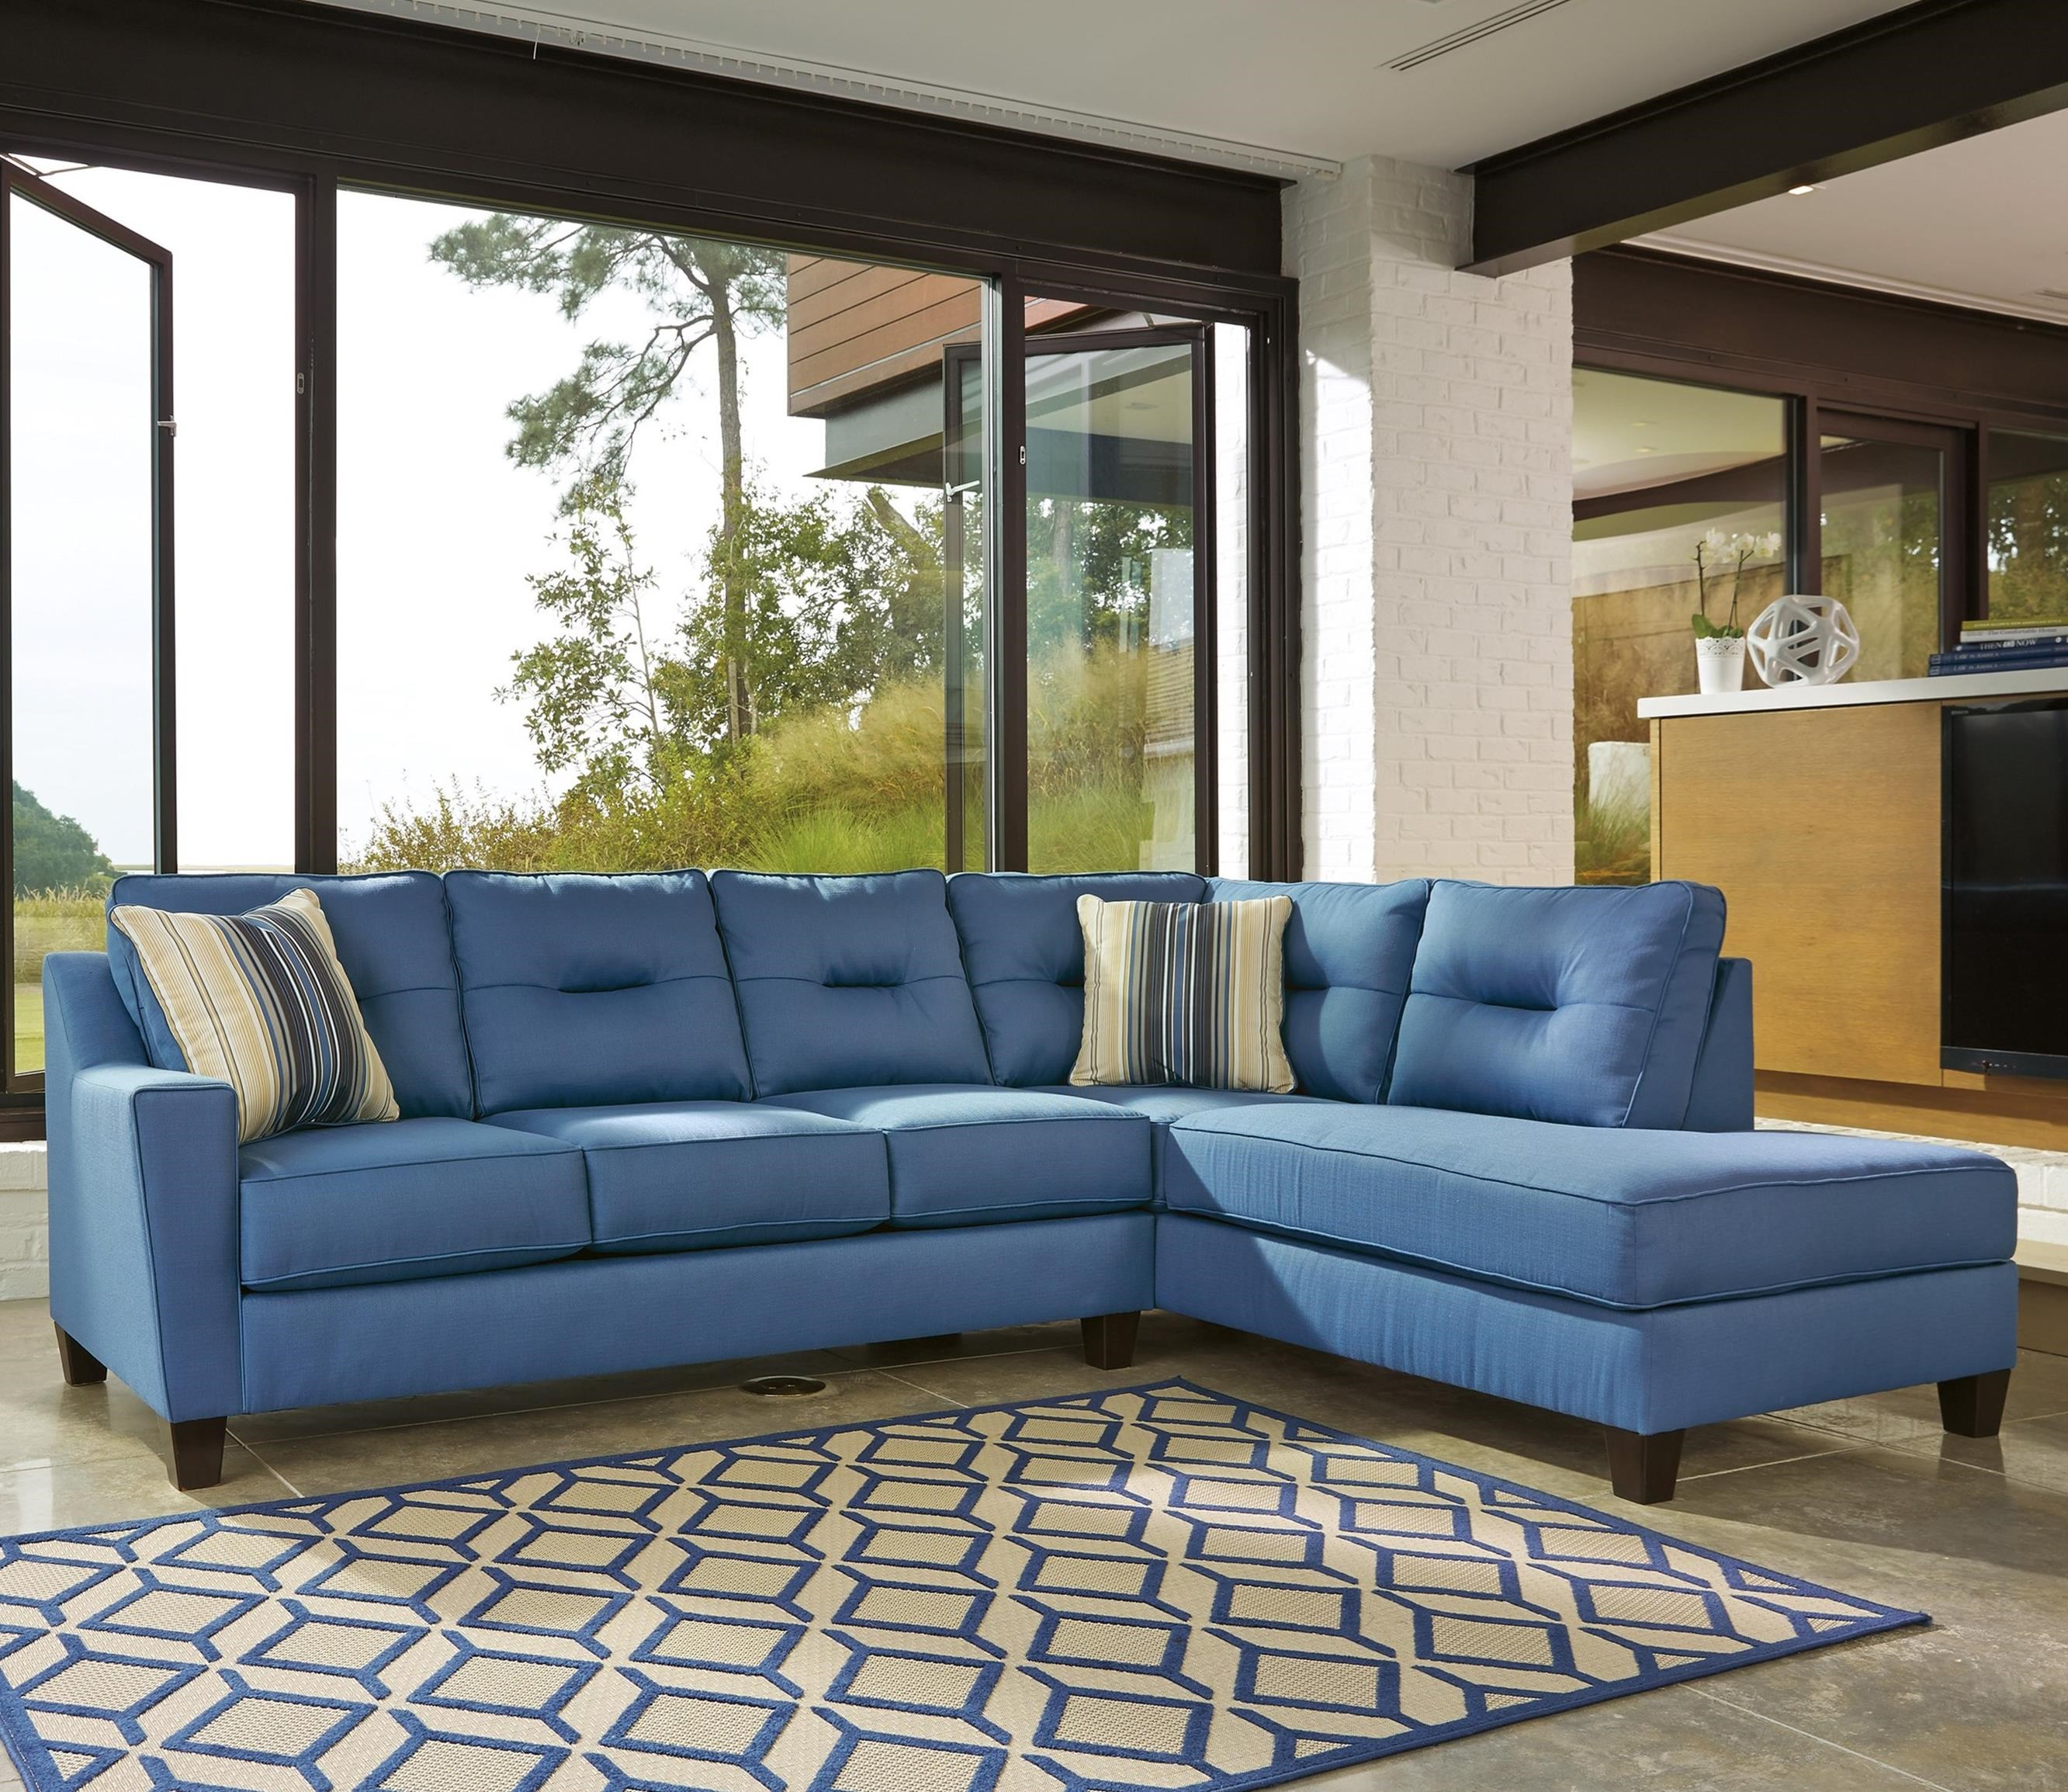 flanigan view rcwilley rc willey jsp modern room fabric sectional store sectionals blue living sofa furniture piece